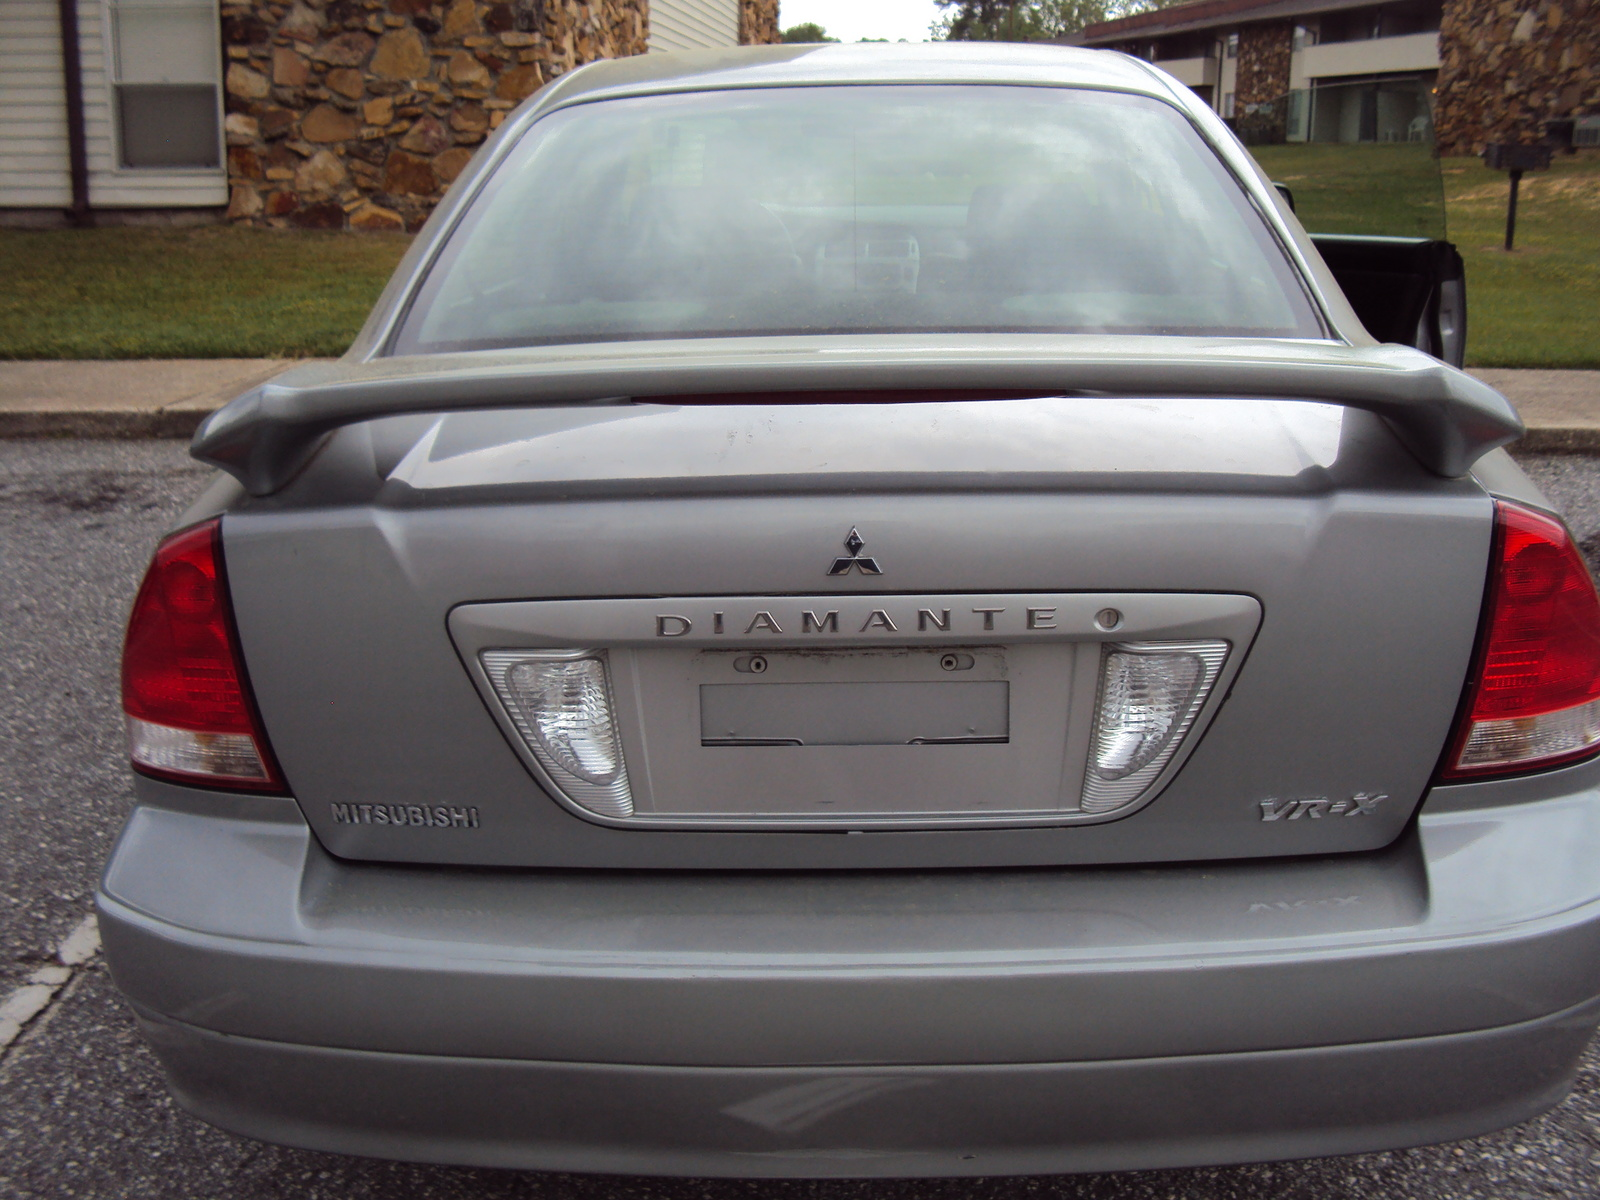 Picture of 2002 Mitsubishi Diamante 4 Dr VR-X Sedan